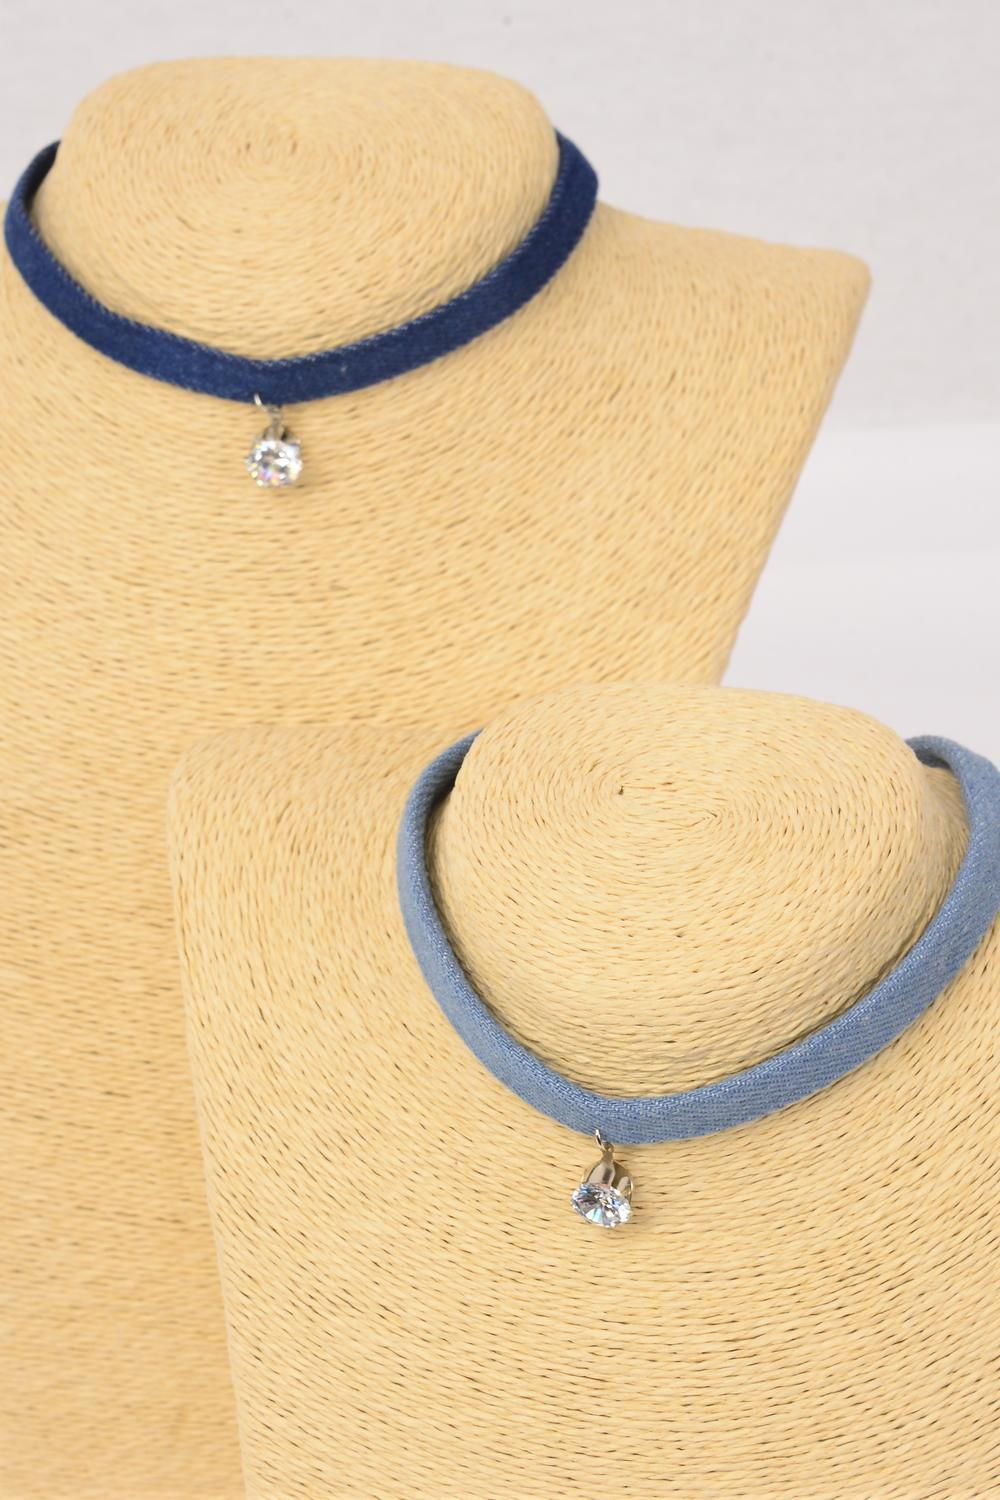 "Necklace Choker Denim CZ Pendant/DZ Size-14"" W Extension Chain,6 of each Color Asst,Display Card & OPP Bag & UPC Code"